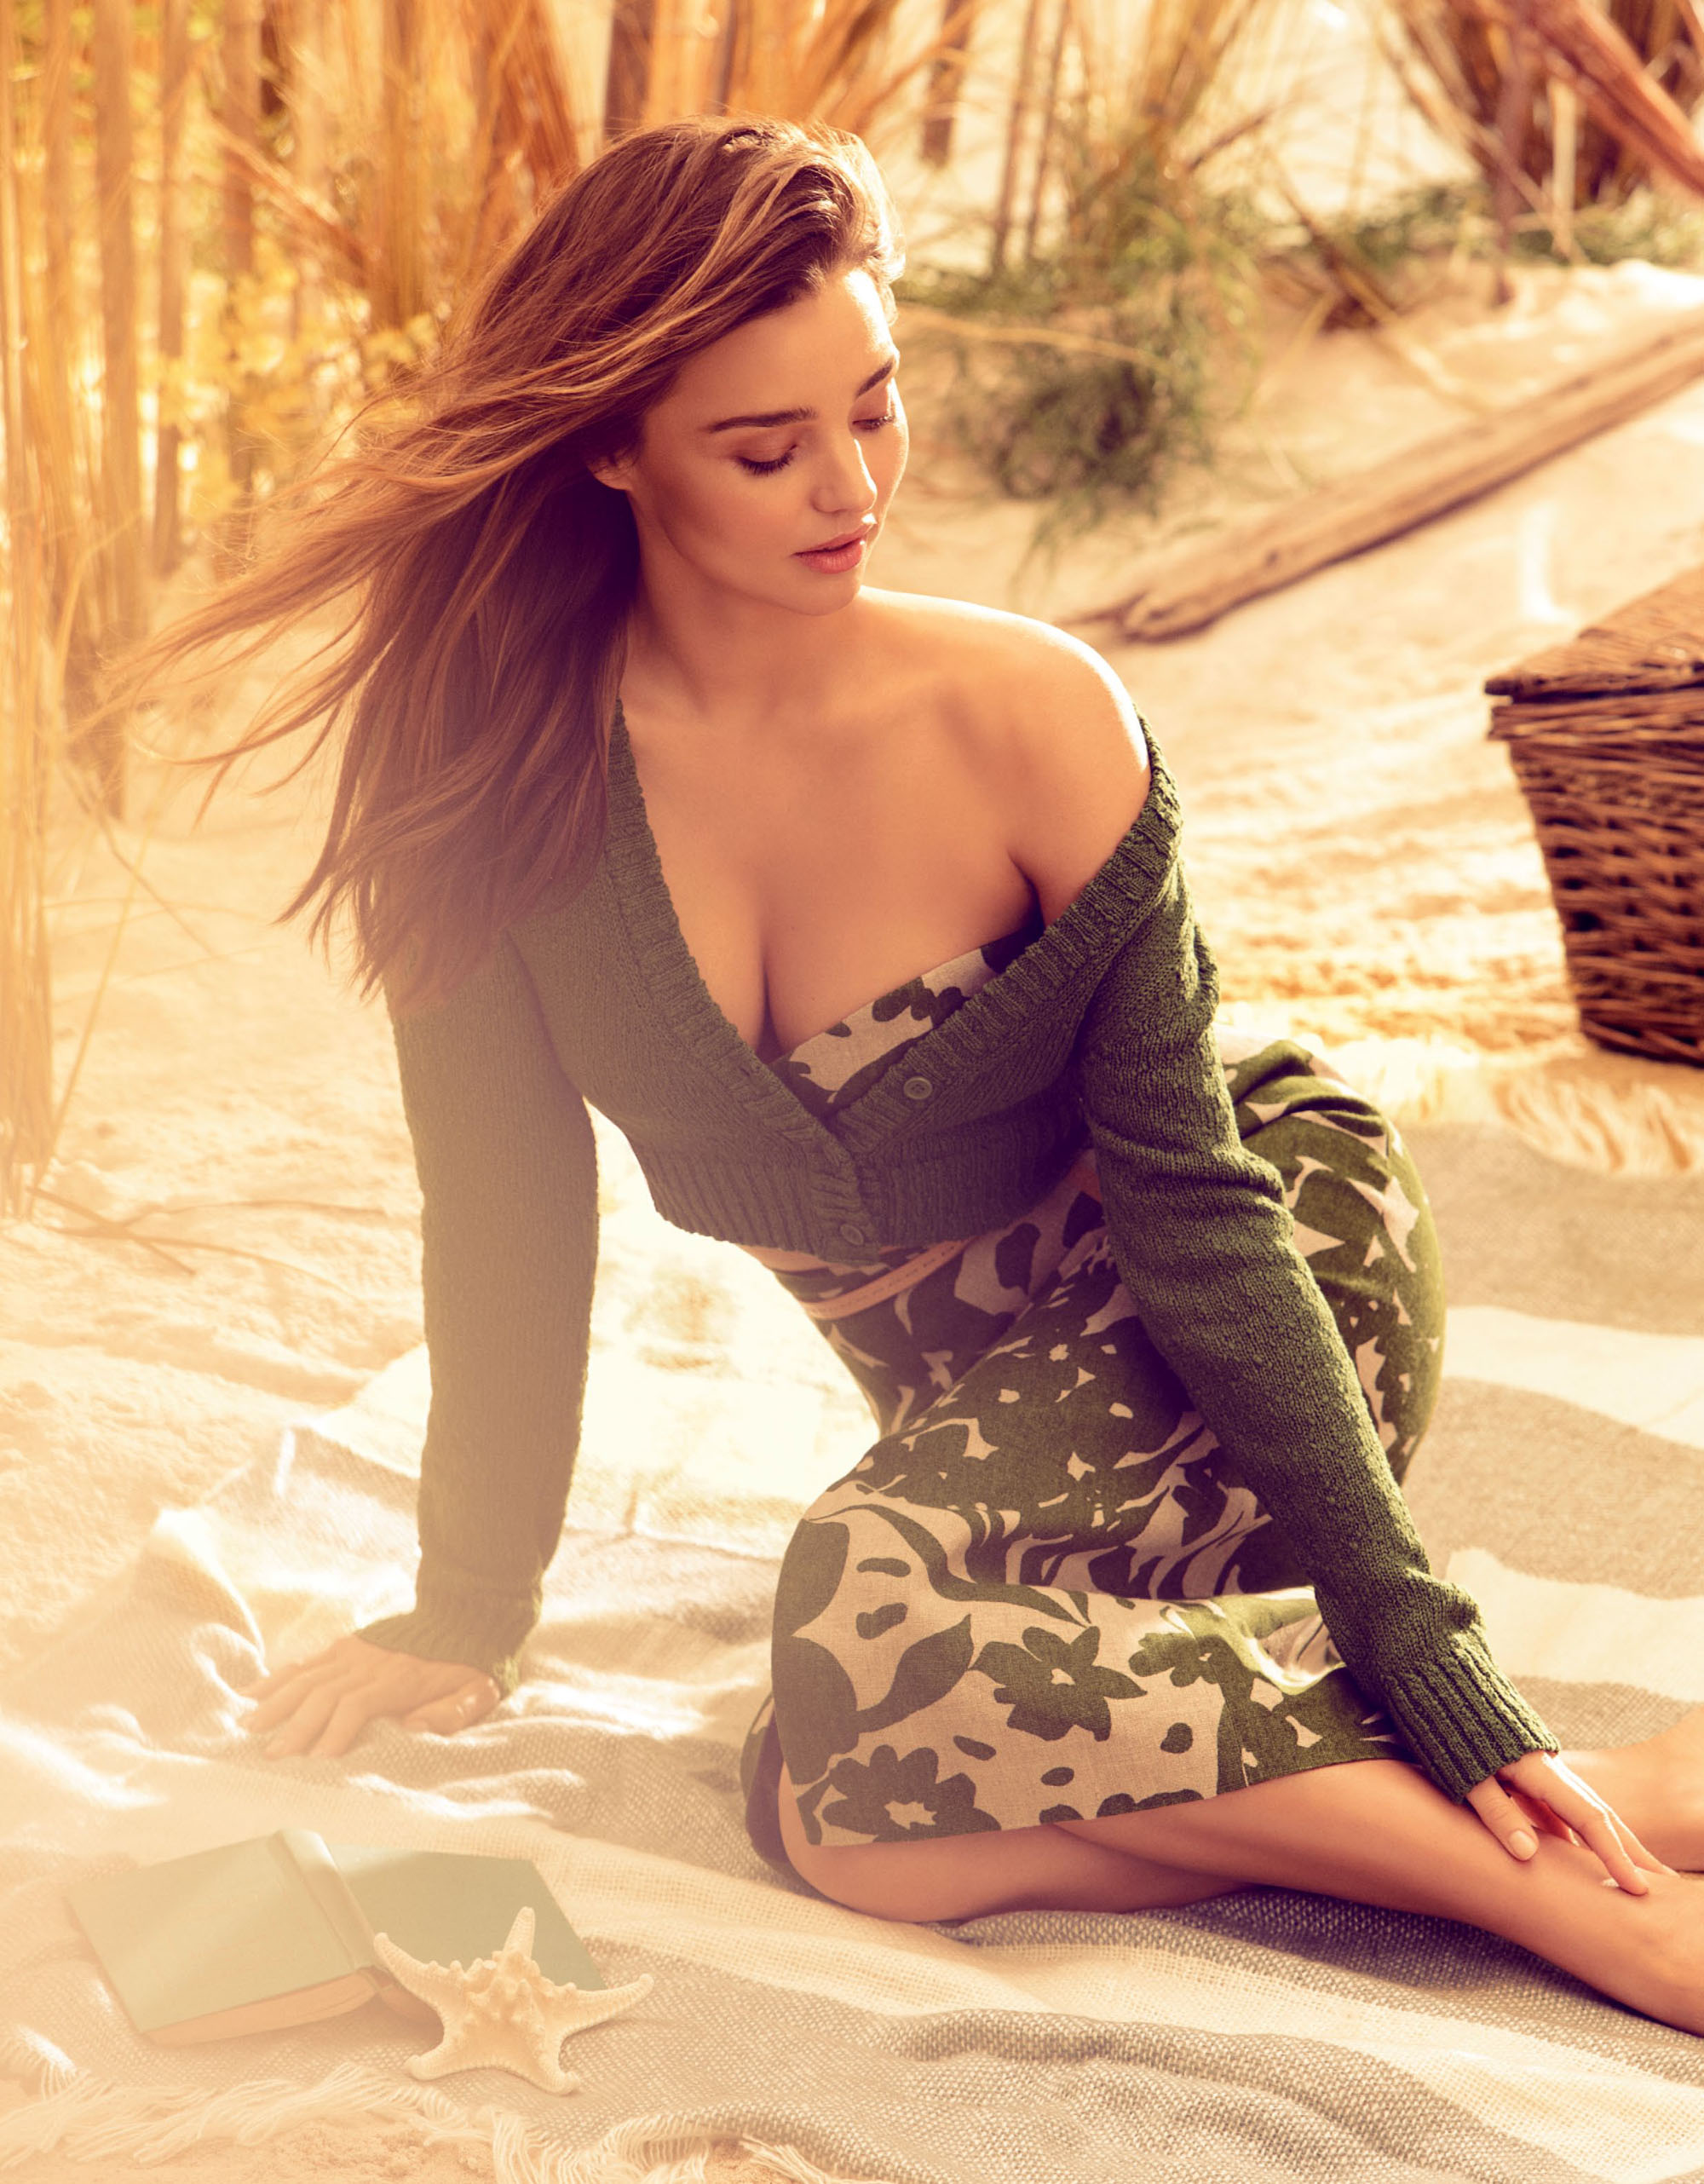 miranda-kerr-by-alexi-lubomirski-for-harper_s-bazaar-uk-june-2014-101